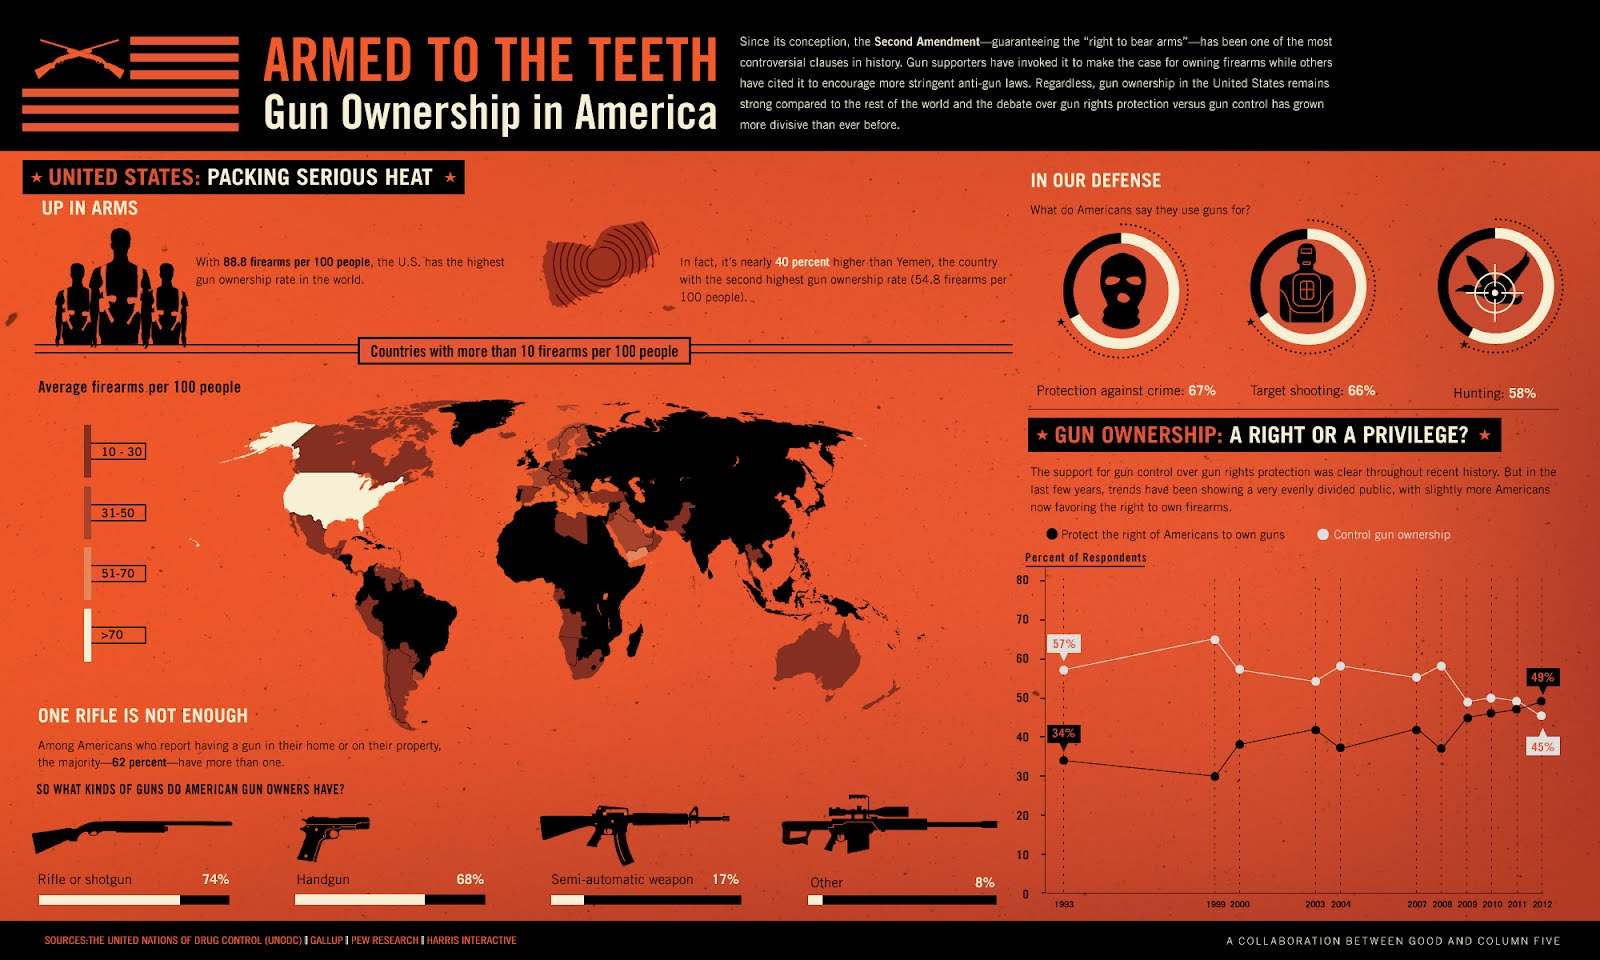 Guns in America: Facts, figures, and an up-close look at the gun control debate